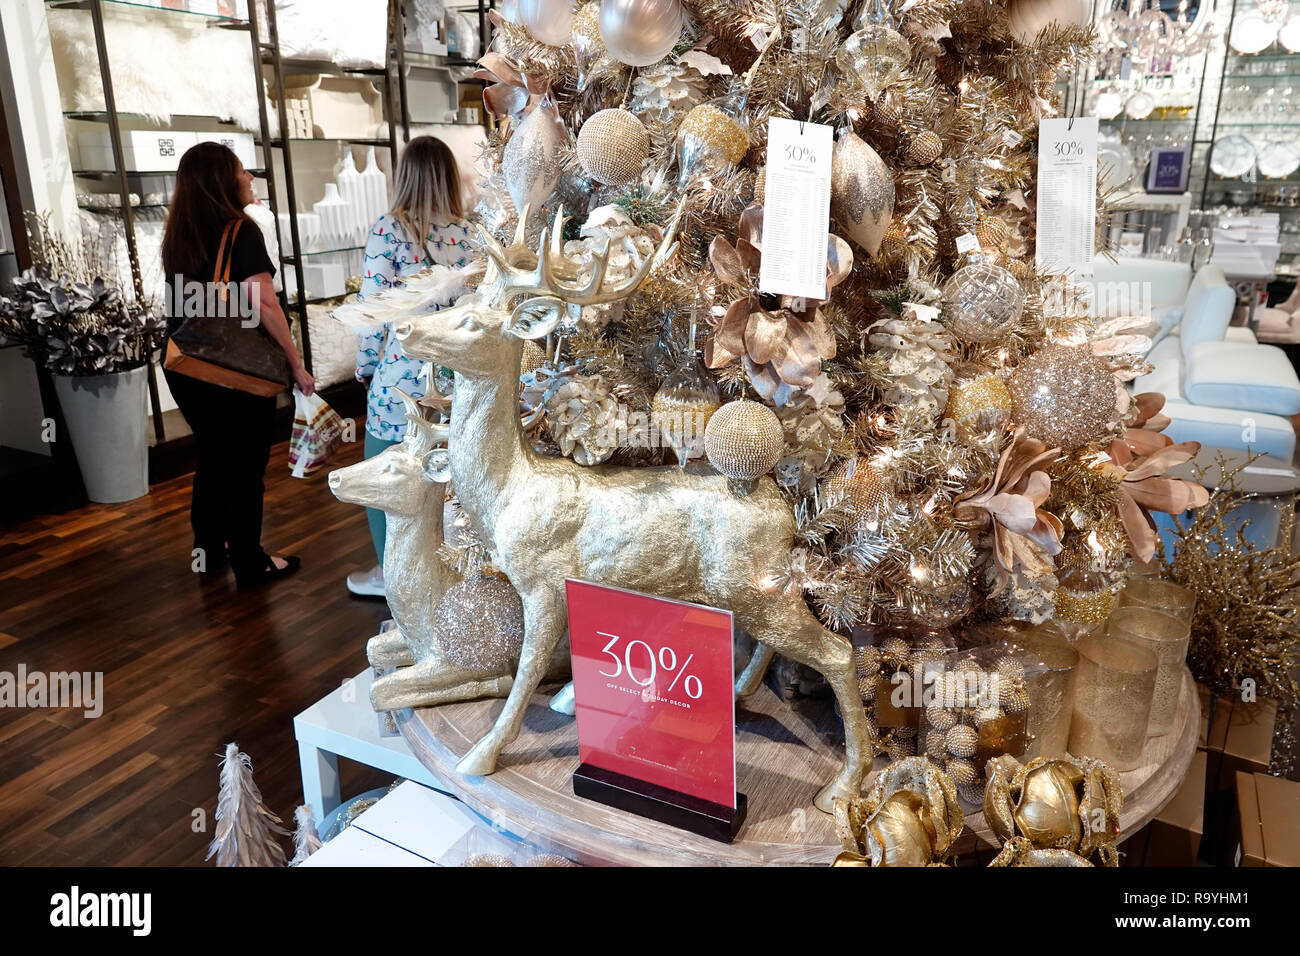 Fort Ft. Lauderdale Florida Pembroke Pines Shops At Pembroke Gardens mall shopping Z Gallerie inside home decor display sale promotion 30% - Stock Image